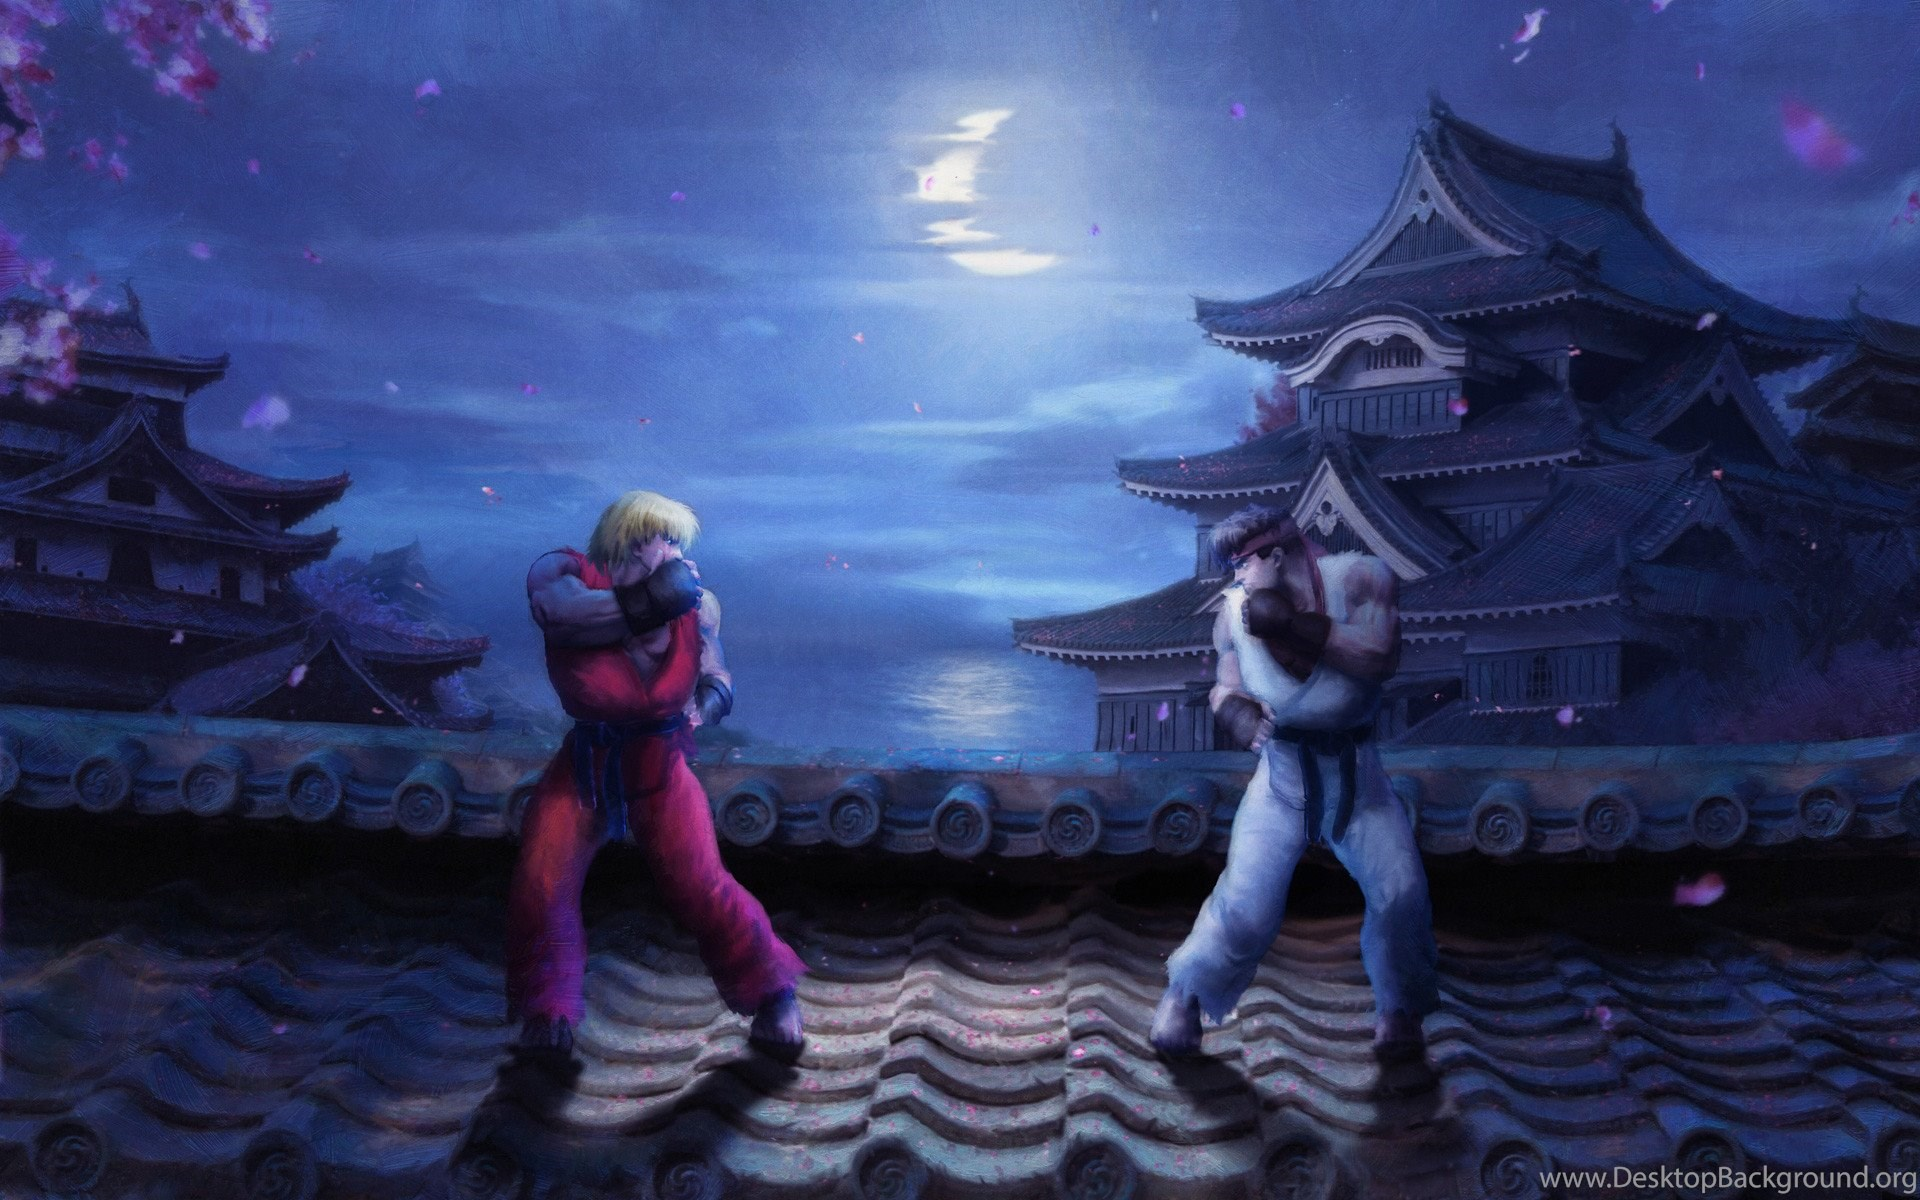 Sweet spring night street fighter 2 inspired wall by - Street fighter 2 wallpaper hd ...